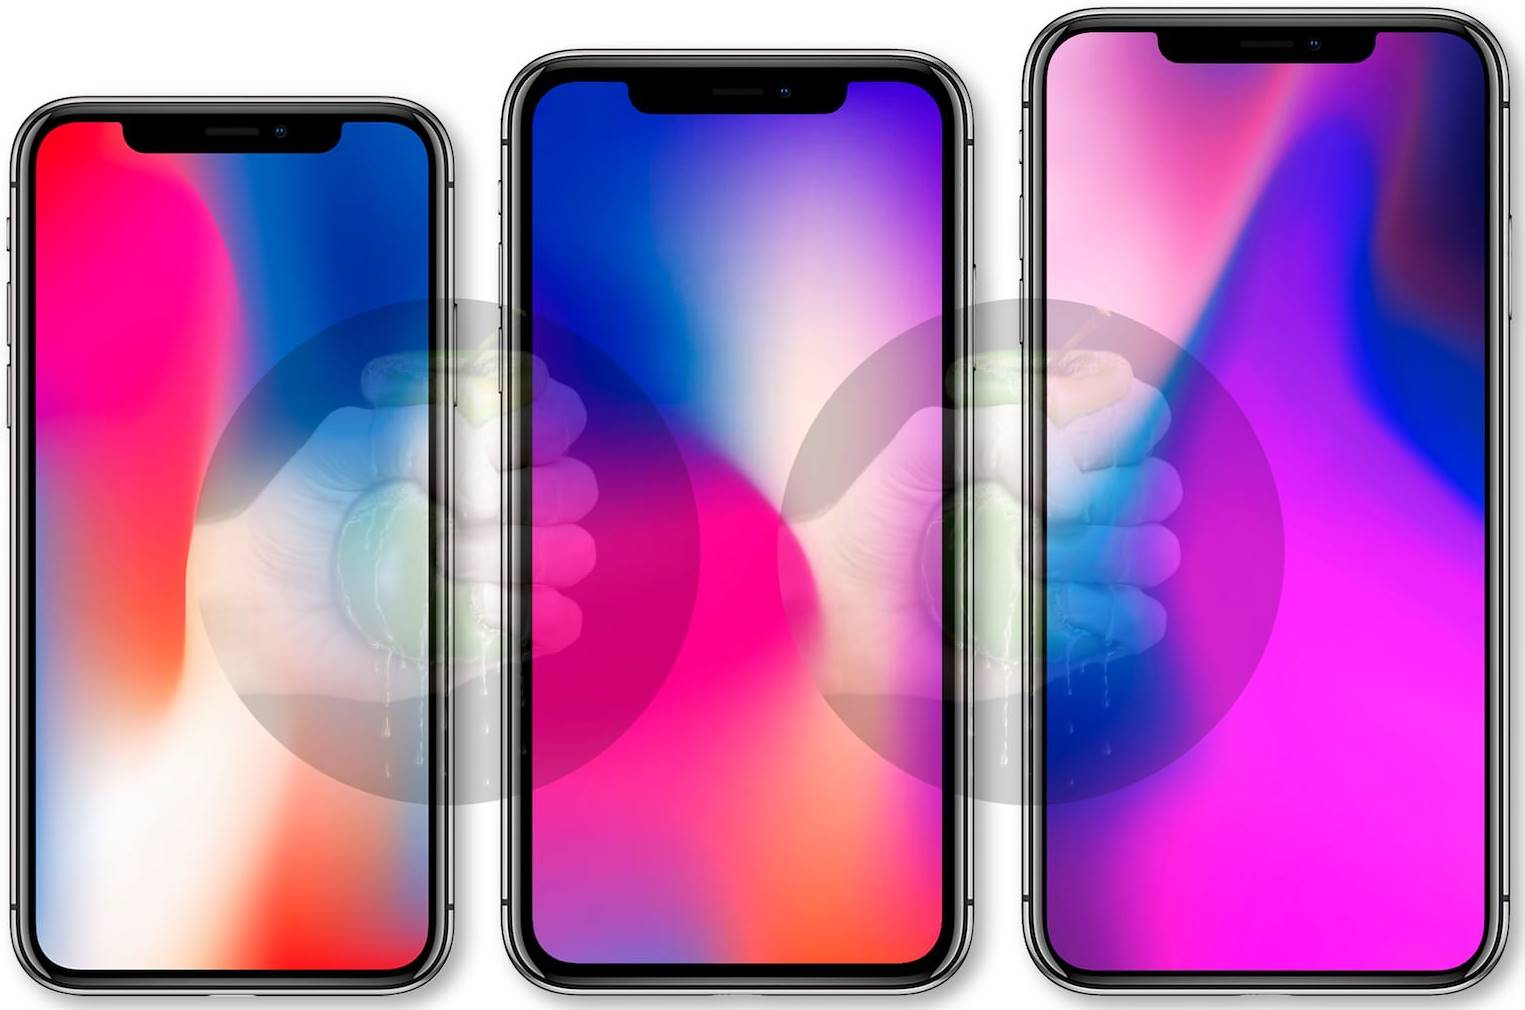 iPhone 9, iPhone X 2018 si iPhone X Plus design